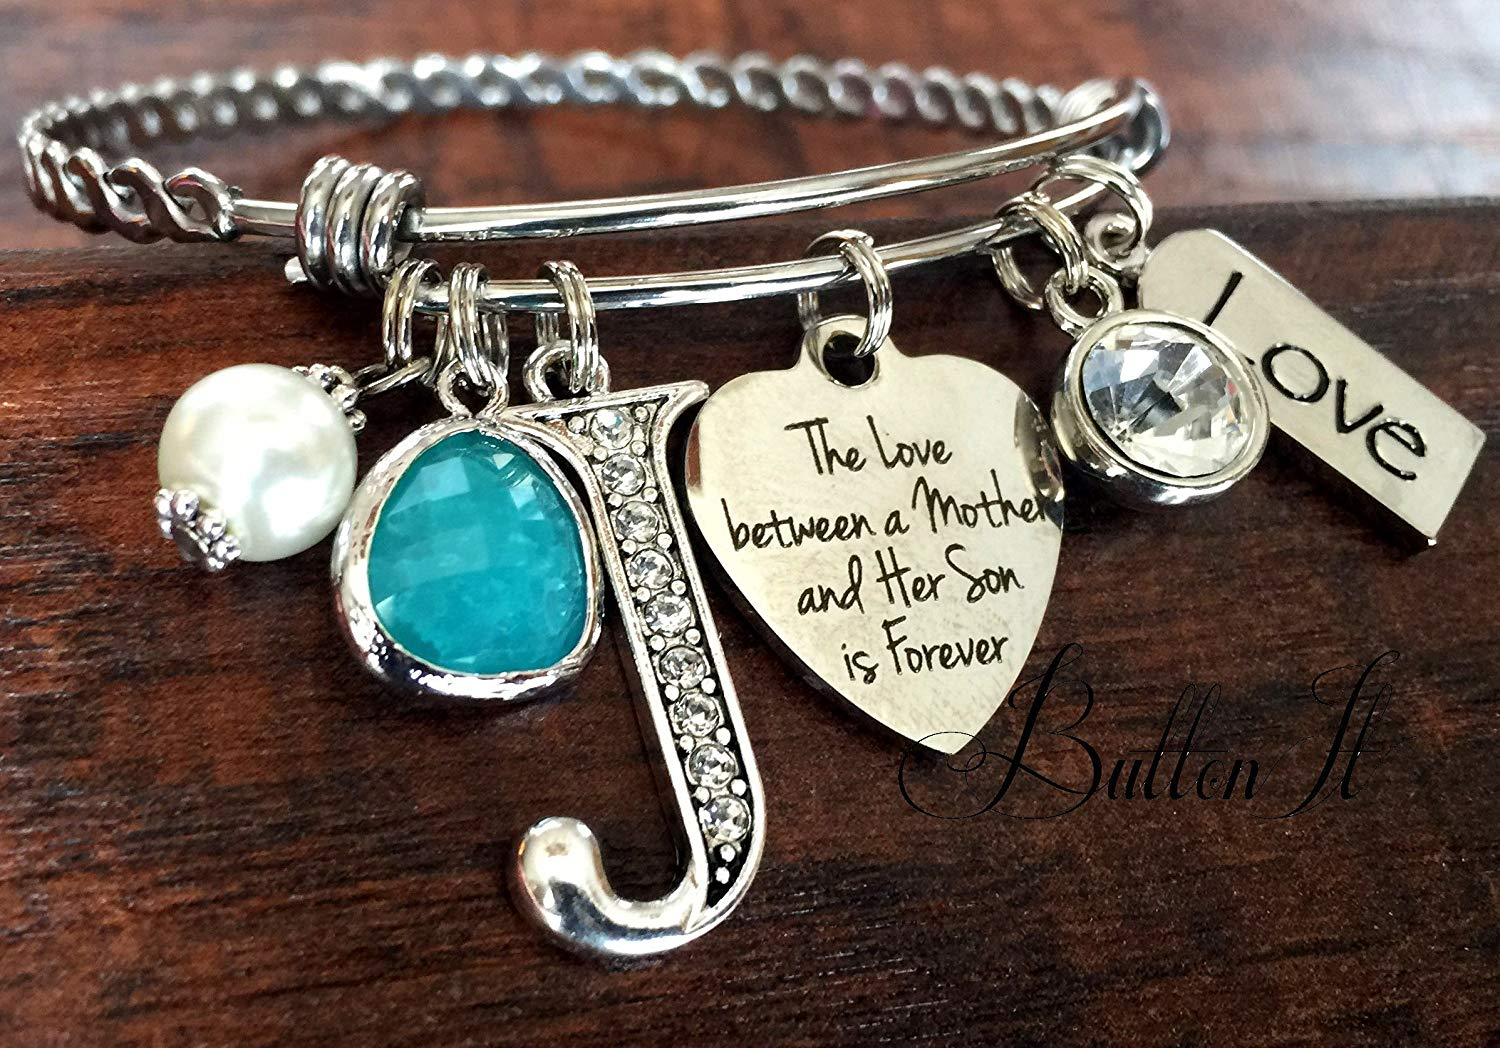 Gifts for Mom, Gifts for Grandma, Mother's day gift, Mother daughter jewelry, BANGLE bracelet, initial jewelry, charm bracelet, mother son jewelry, birthstone charm, baby shower gift